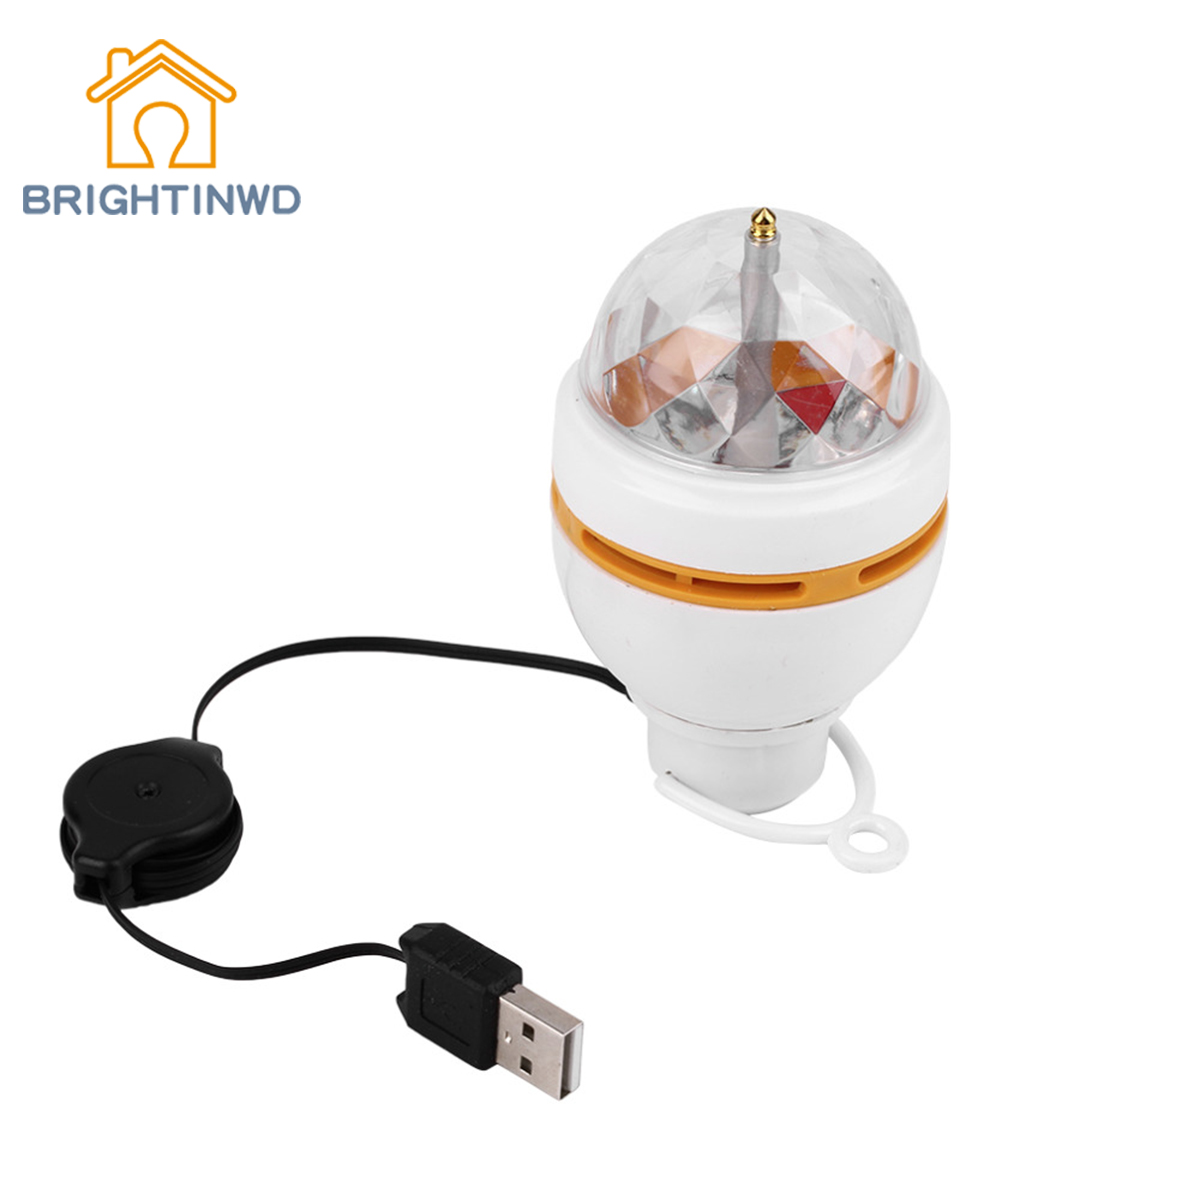 BRIGHTINWD Portable Stage Light Auto Rotating Lamp with USB Interface Colorful 3W LED Disco DJ Party Music Crystal Magic Ball